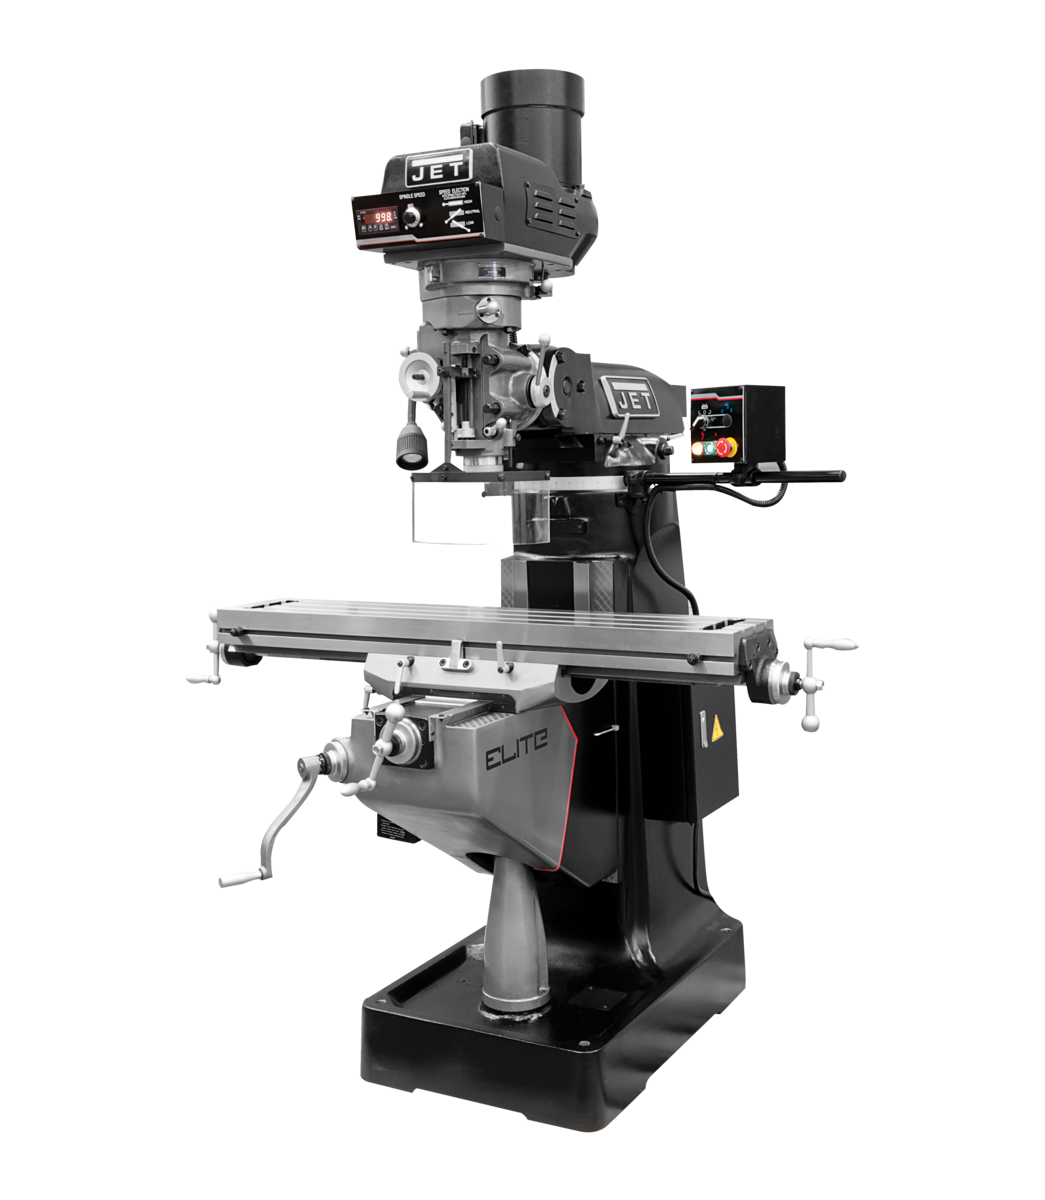 EVS-949 Mill with 3-Axis Newall DP700 (Knee) DRO and X-Axis JET Powerfeed